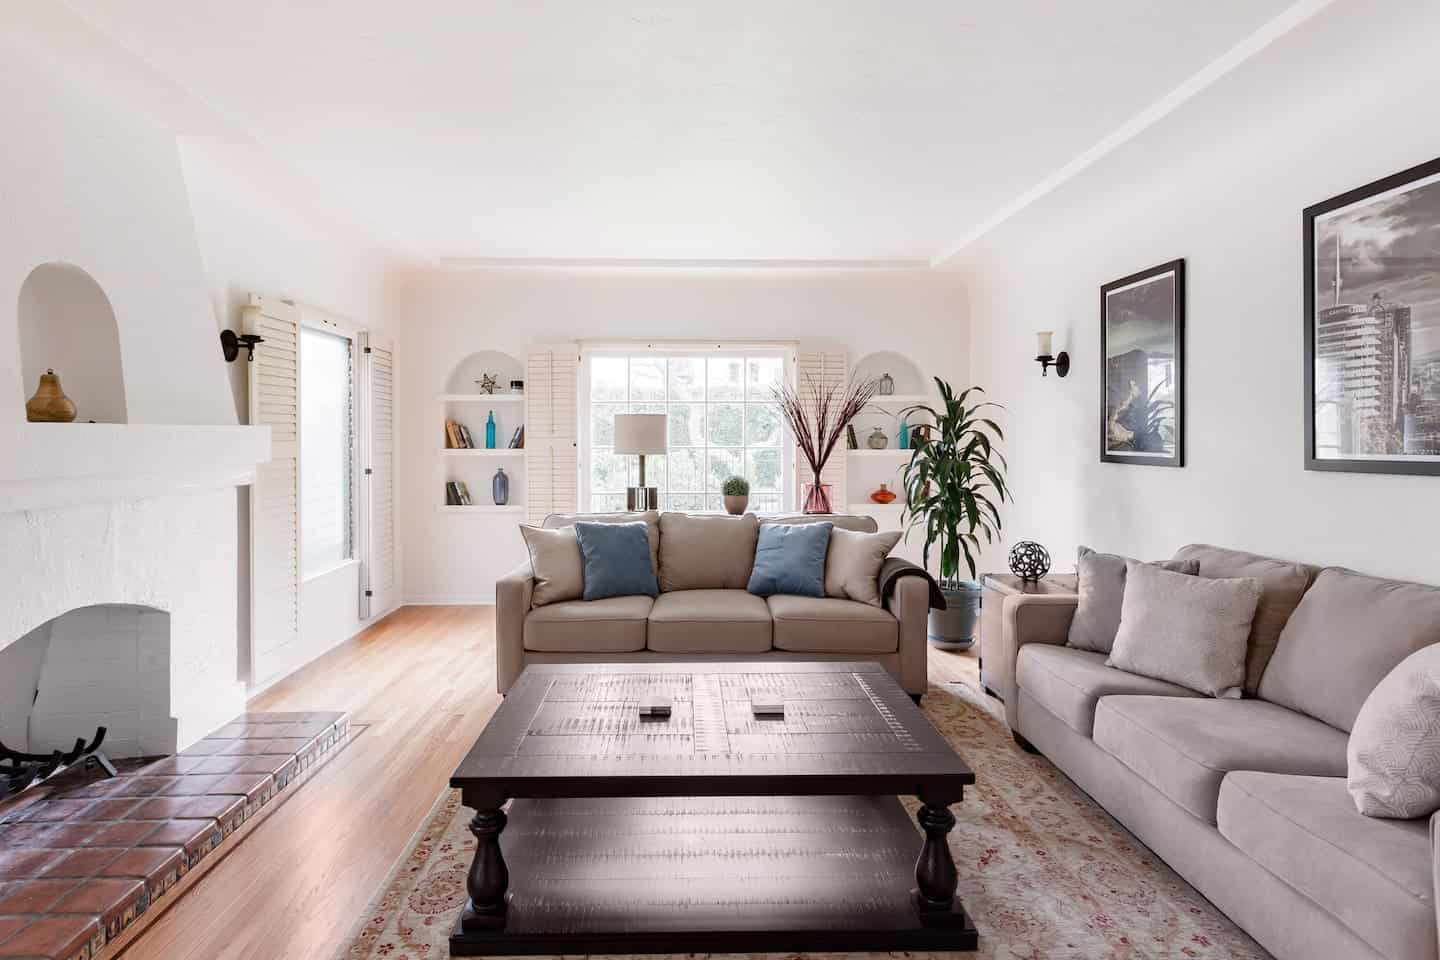 Image of Airbnb rental in West Hollywood, CA